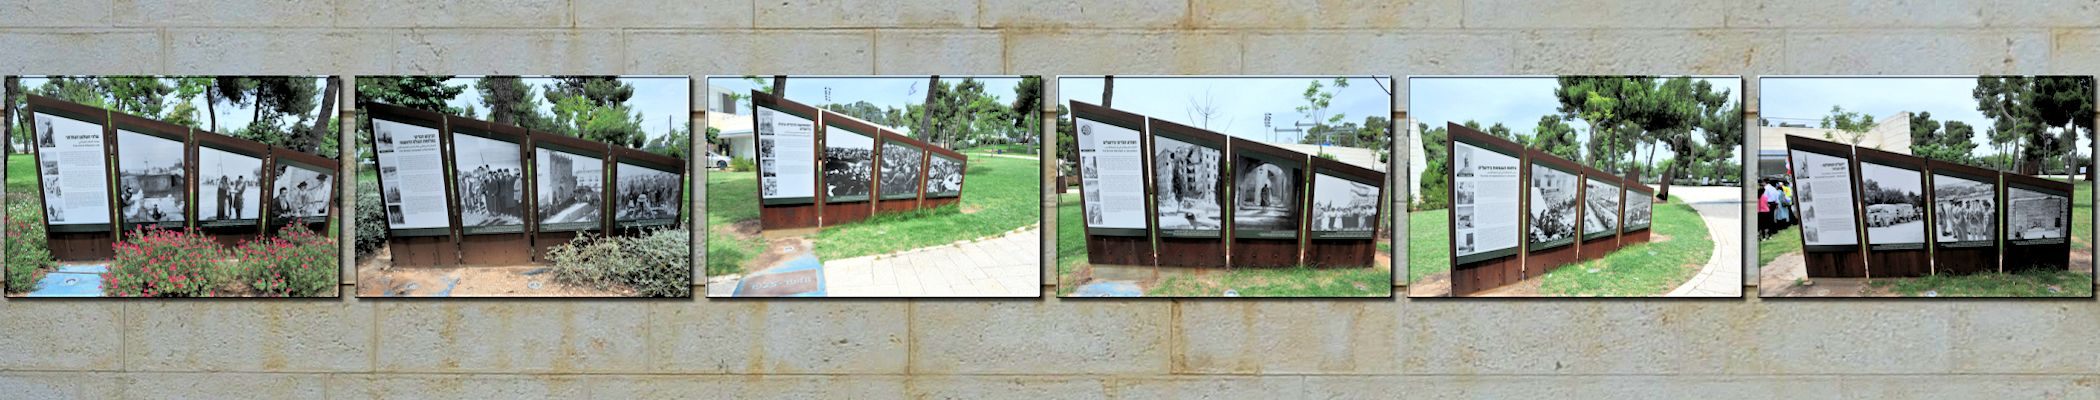 History Pages on the Lawn - Ammunition Hill, Jerusalem - © Deniz Bensason